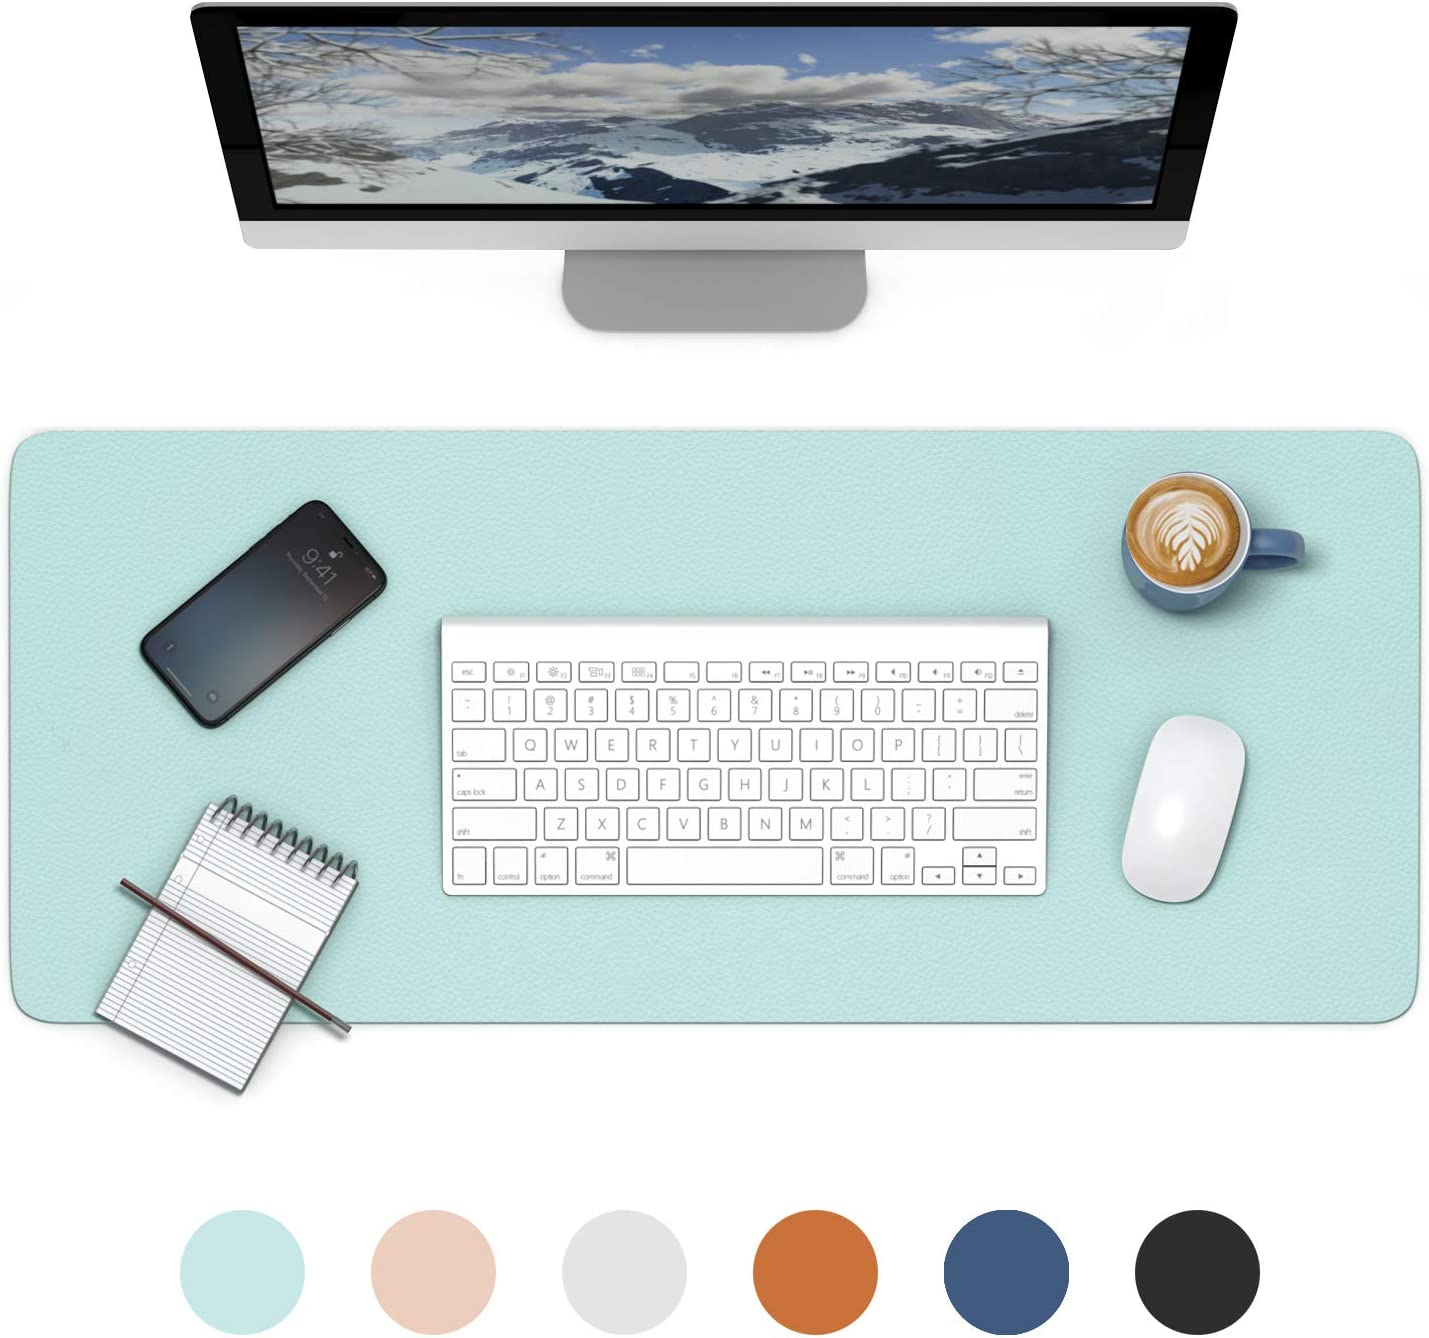 Leather Desk Pad Protector, IEZFIX Dual-Sided Laptop Desktop Desk Mat, Large Computer Keyboard and Mouse Pad,Gifts for Kids/Men/Women,Office Desk Accessories,Home Décor Products (Light Blue)